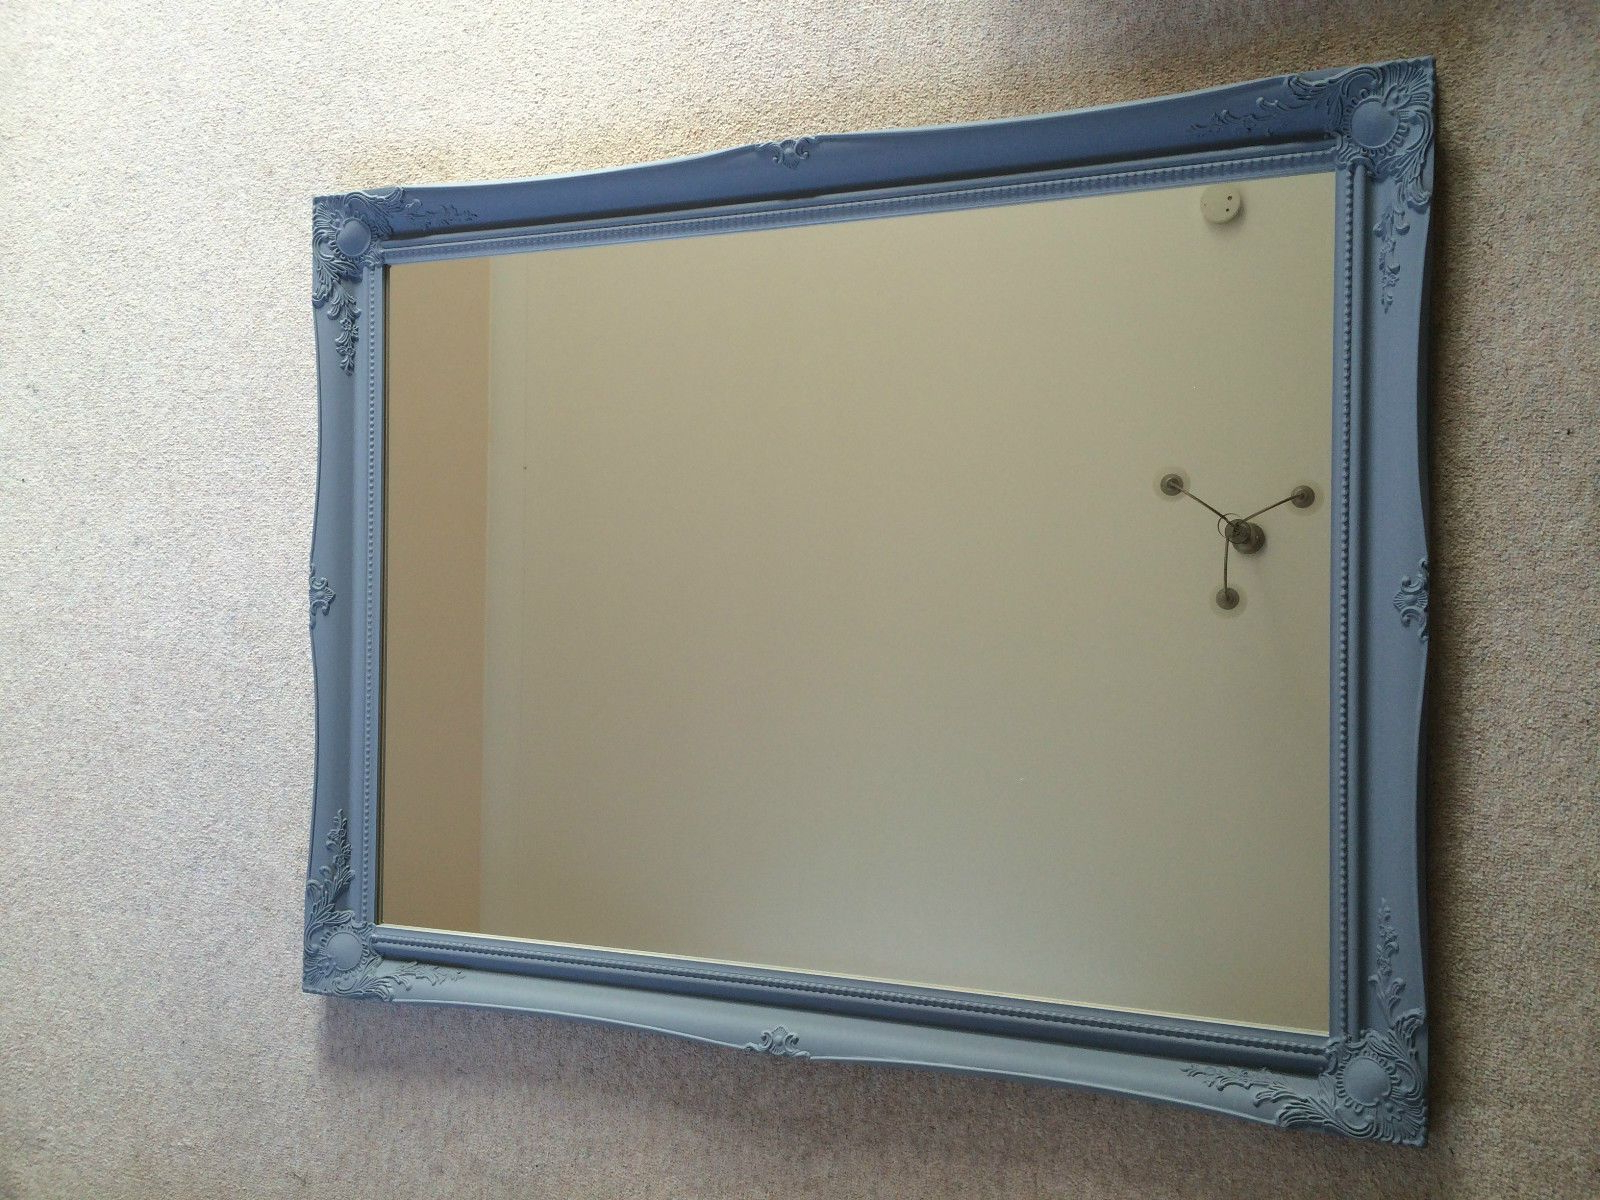 "Favorite Extra Large Wall Mirrors With Superb Extra Large French Grey Wall Mirror Frame Size 30"" X 42"" (75cm X 105cm) (View 17 of 20)"